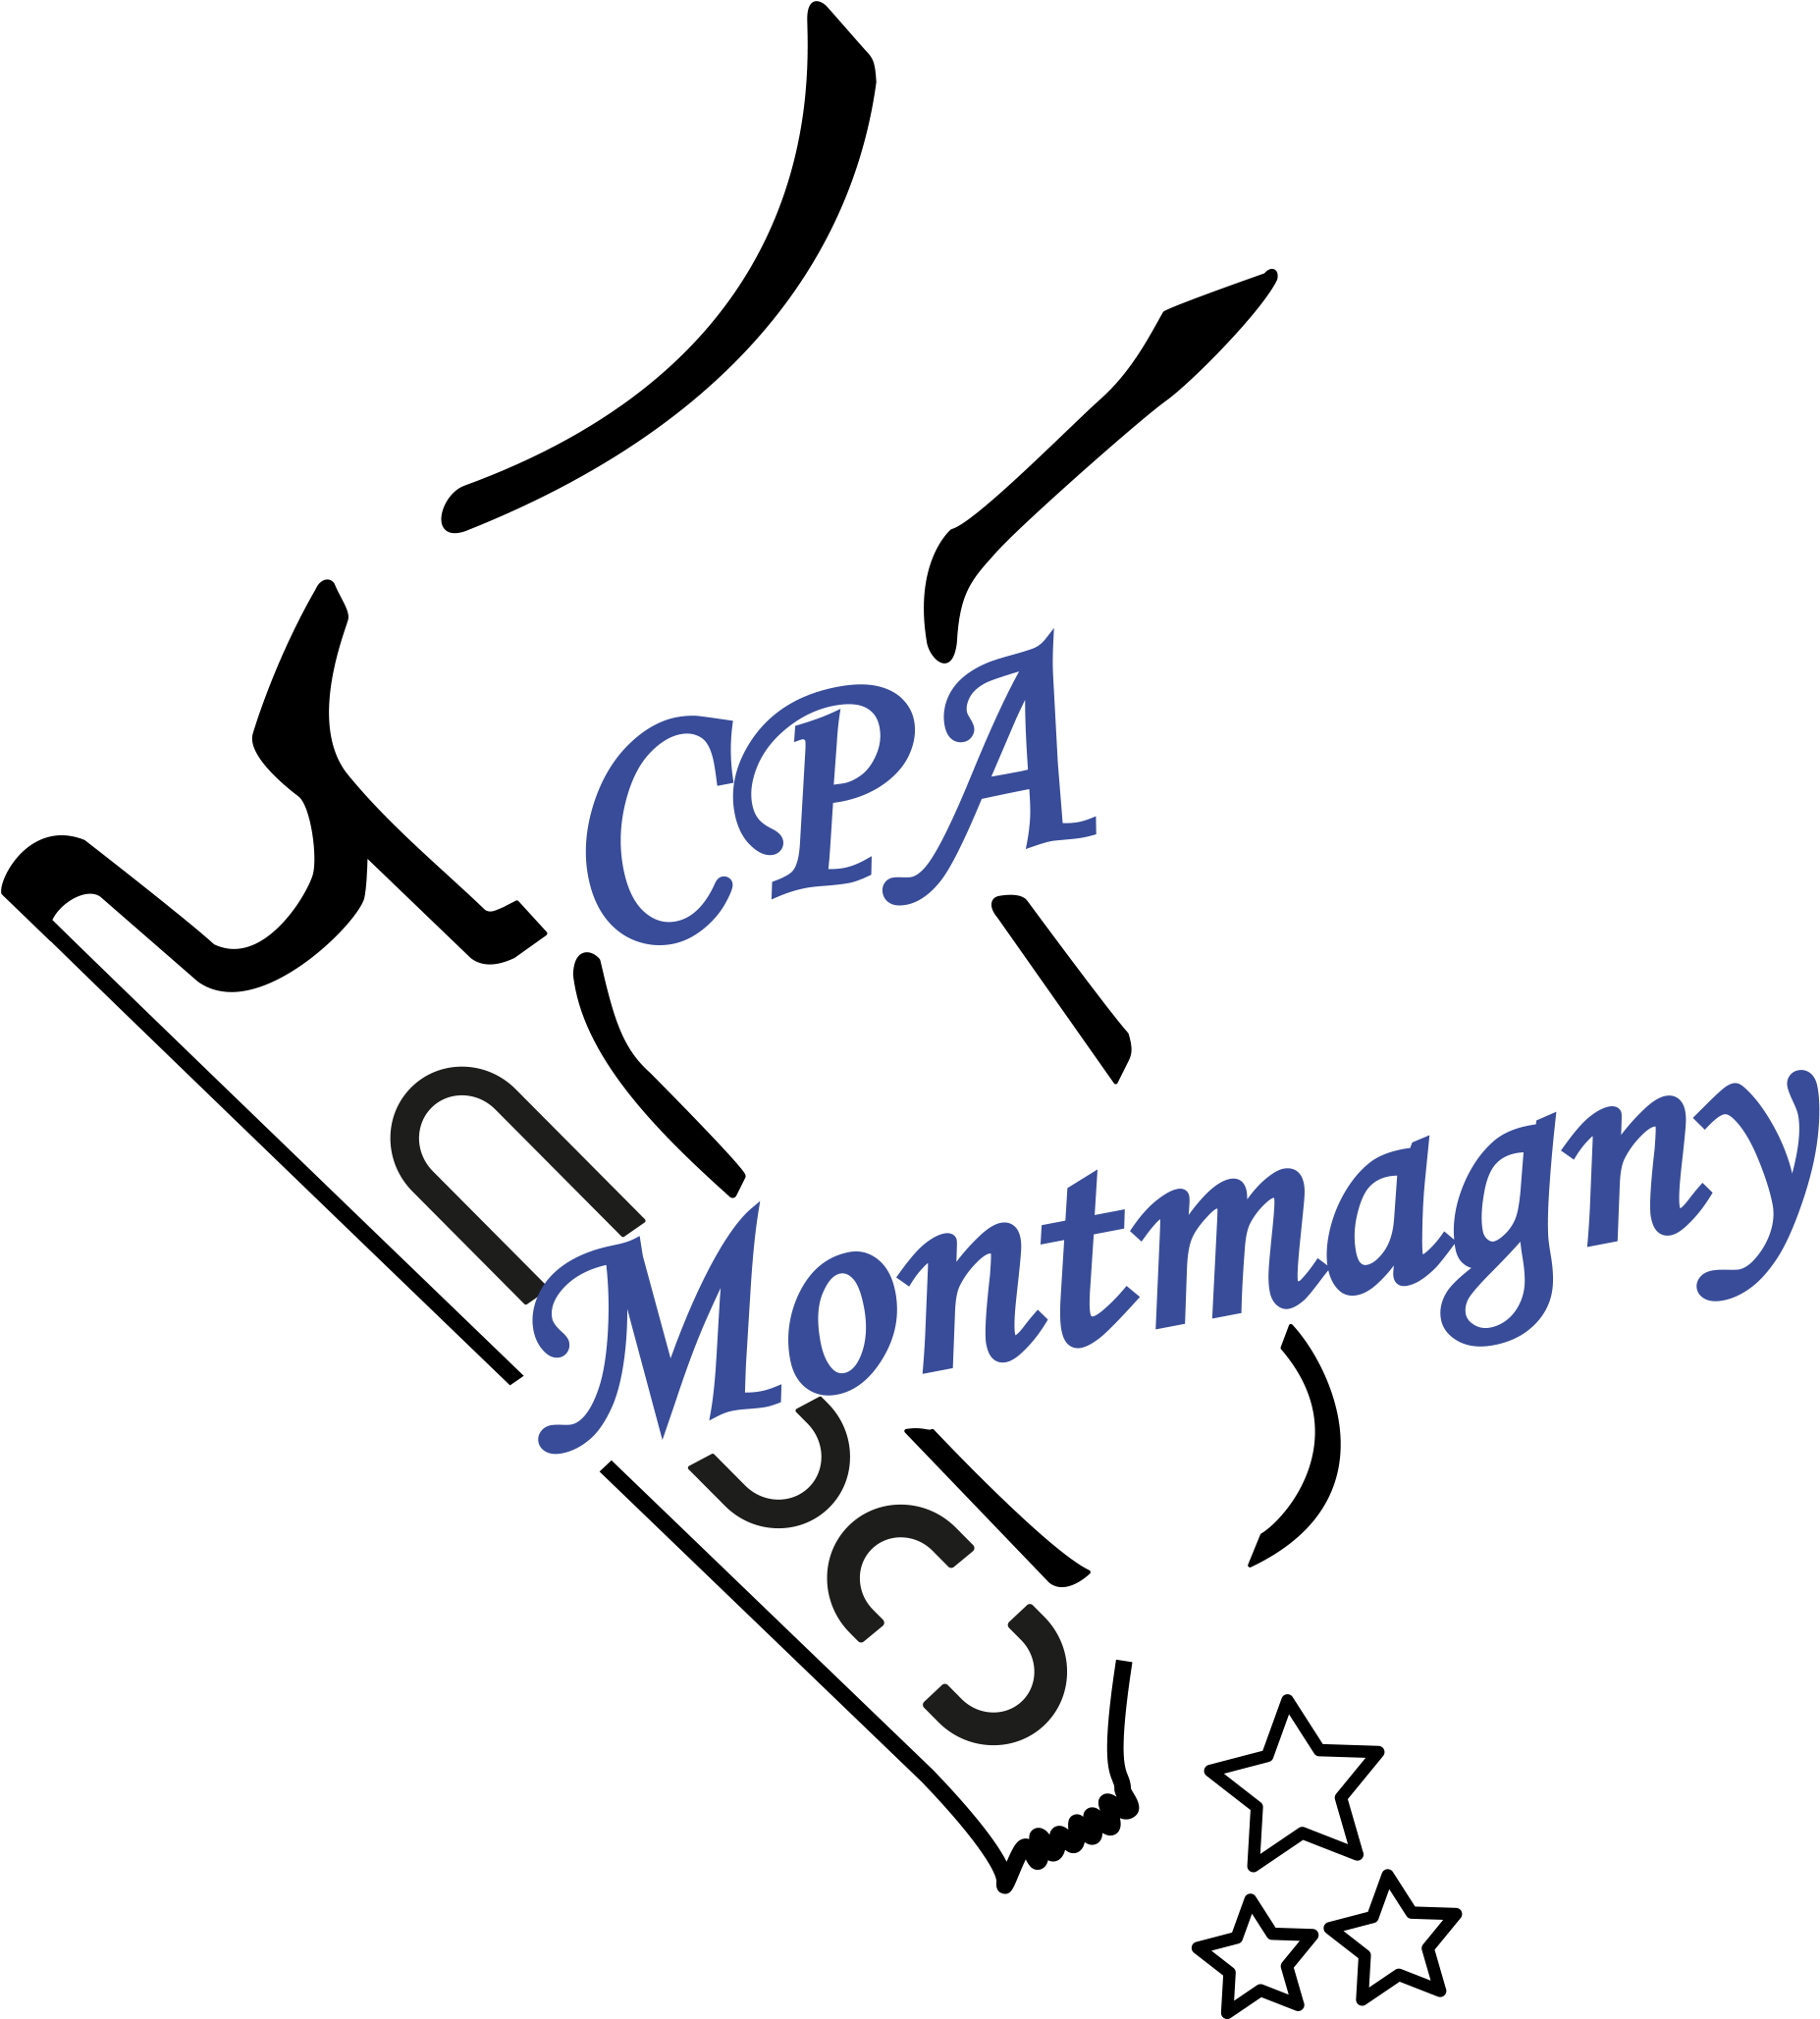 CPA_Montmagny